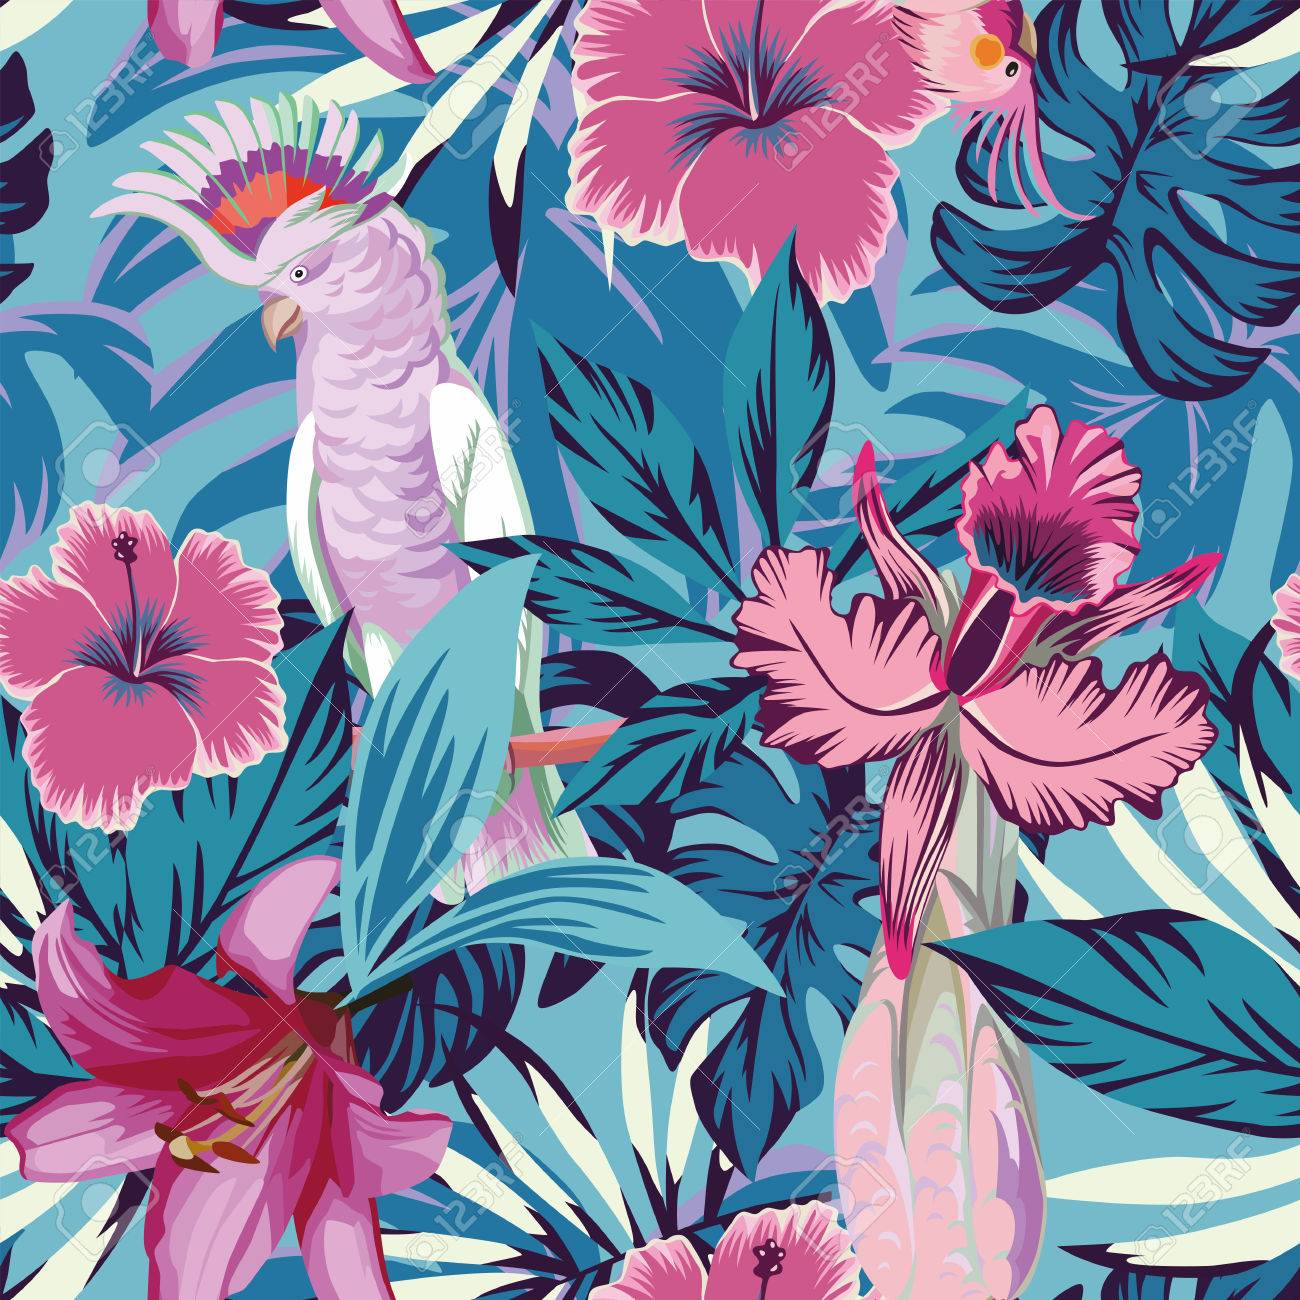 Pink Parrot Tropical Flowers And Plants Blue Background Seamless